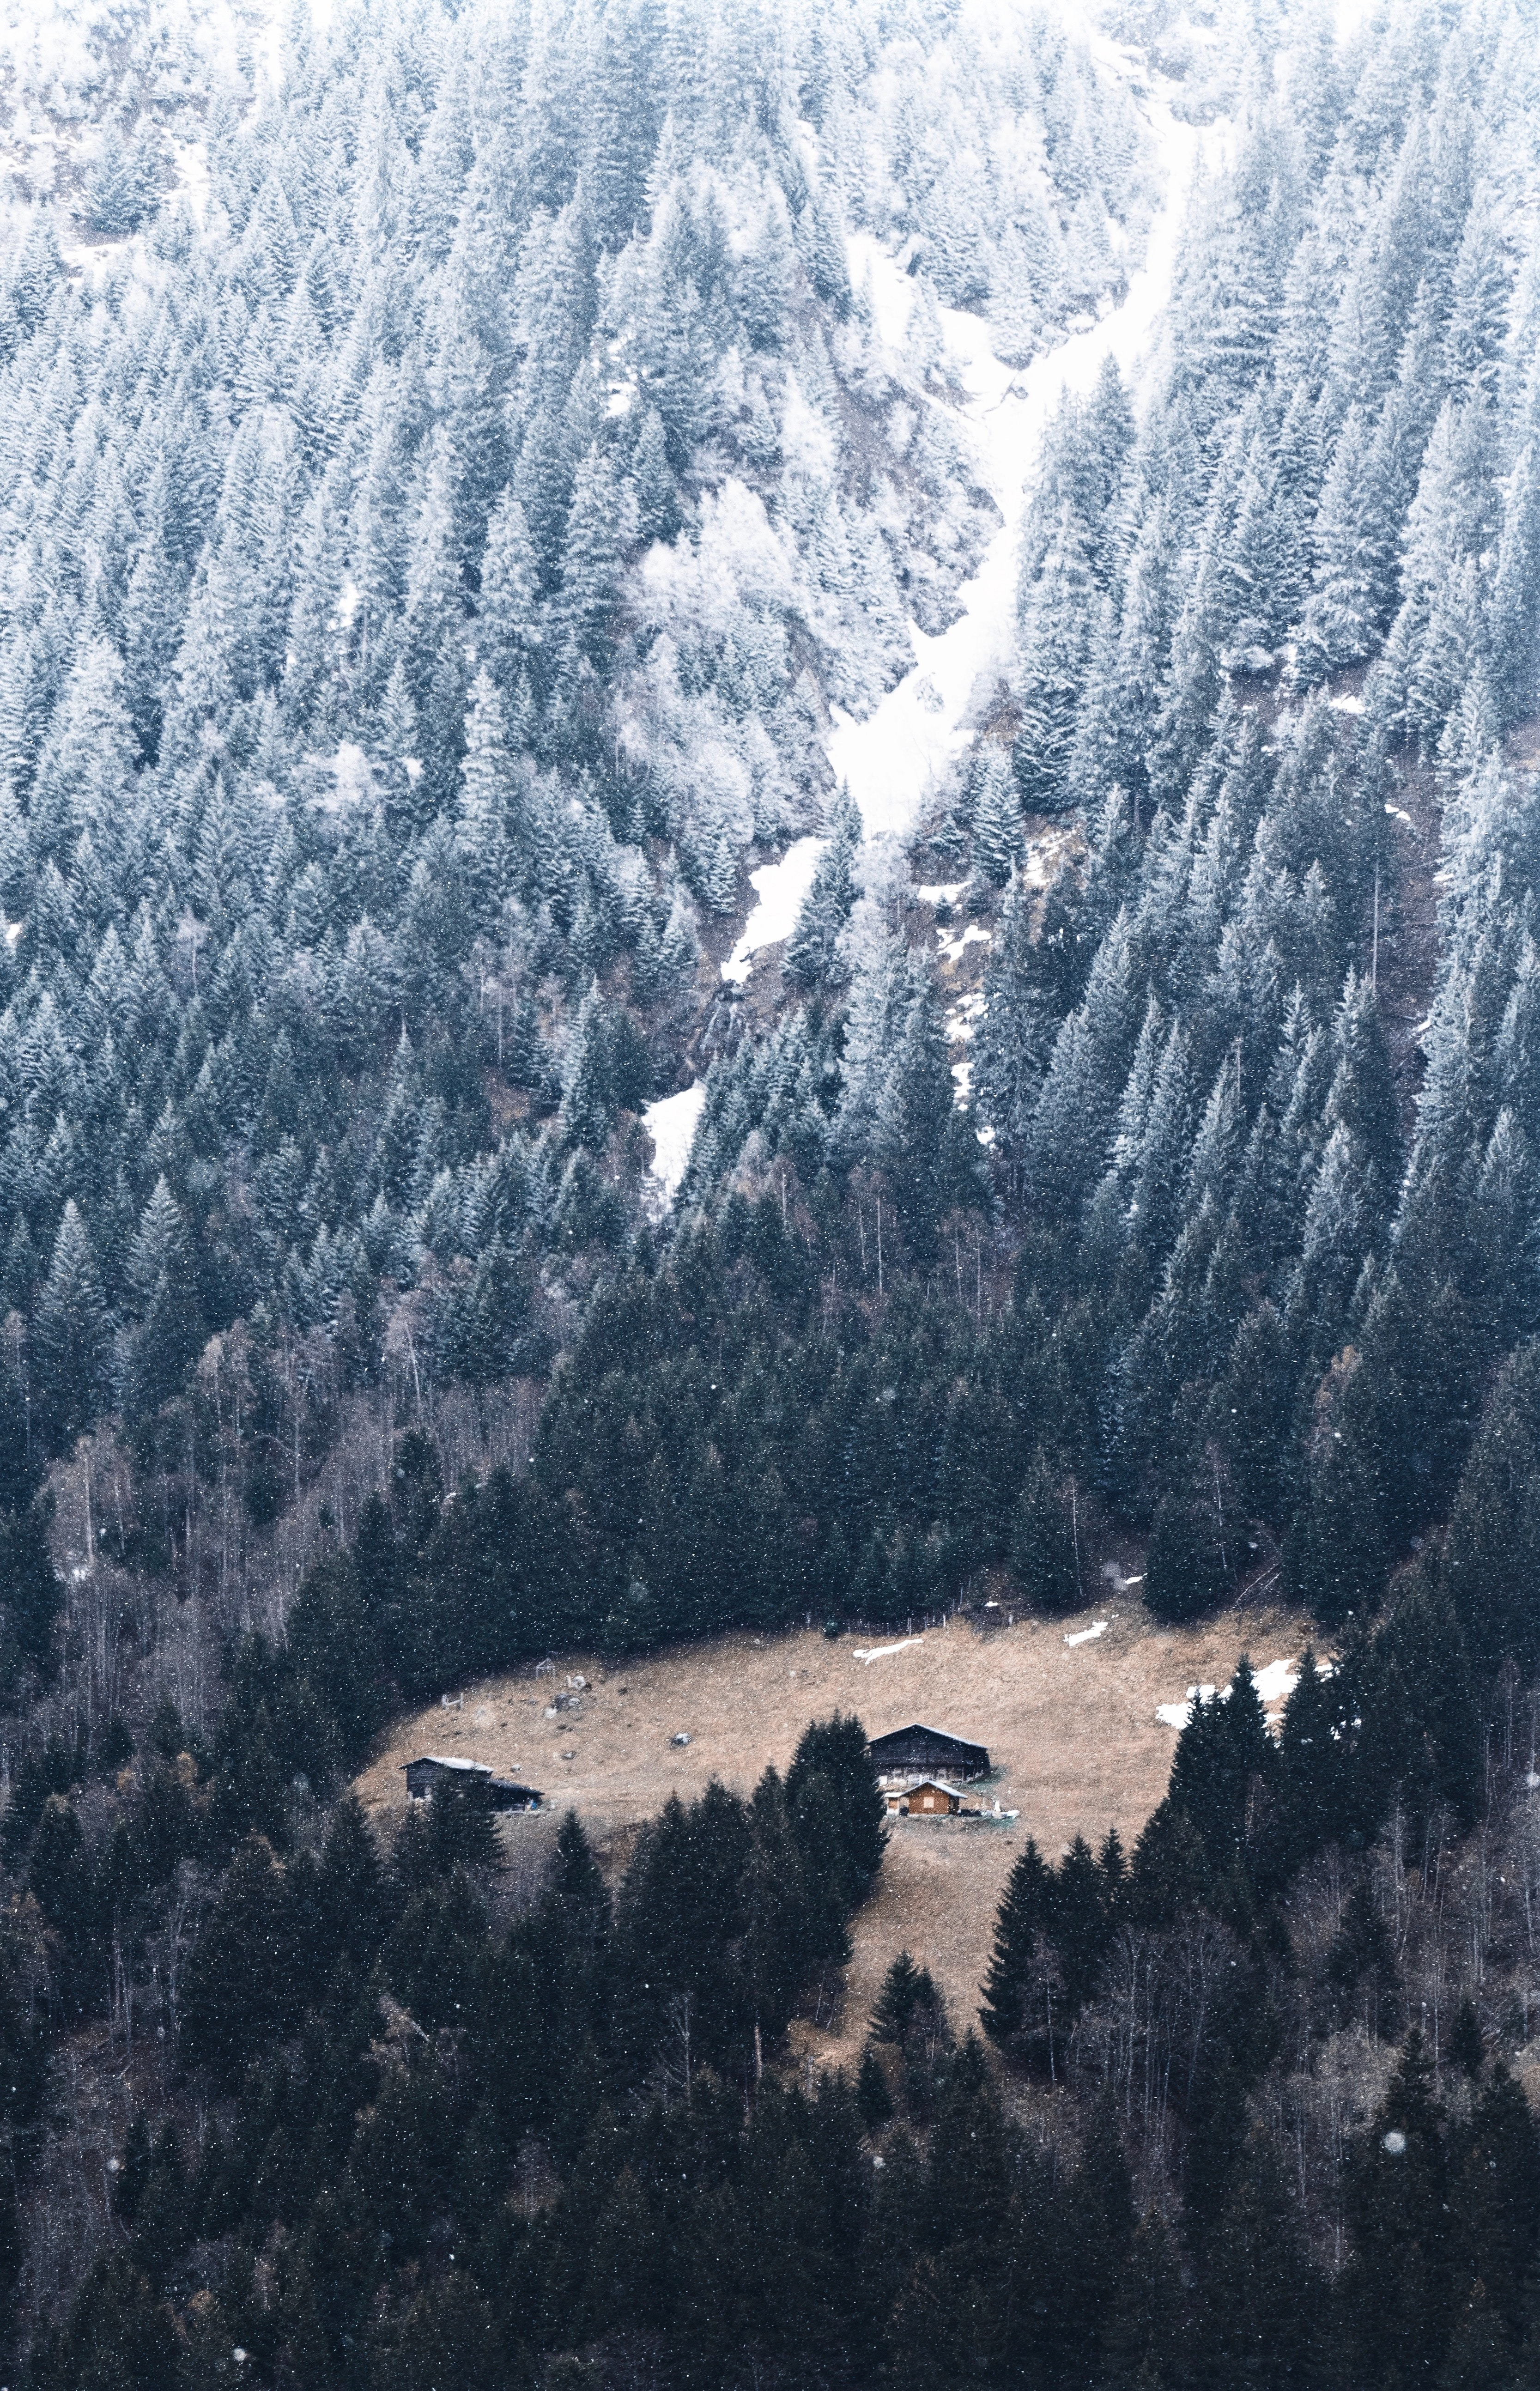 135798 download wallpaper Nature, Slope, Forest, Small House, Lodge, Mountain, Snow screensavers and pictures for free